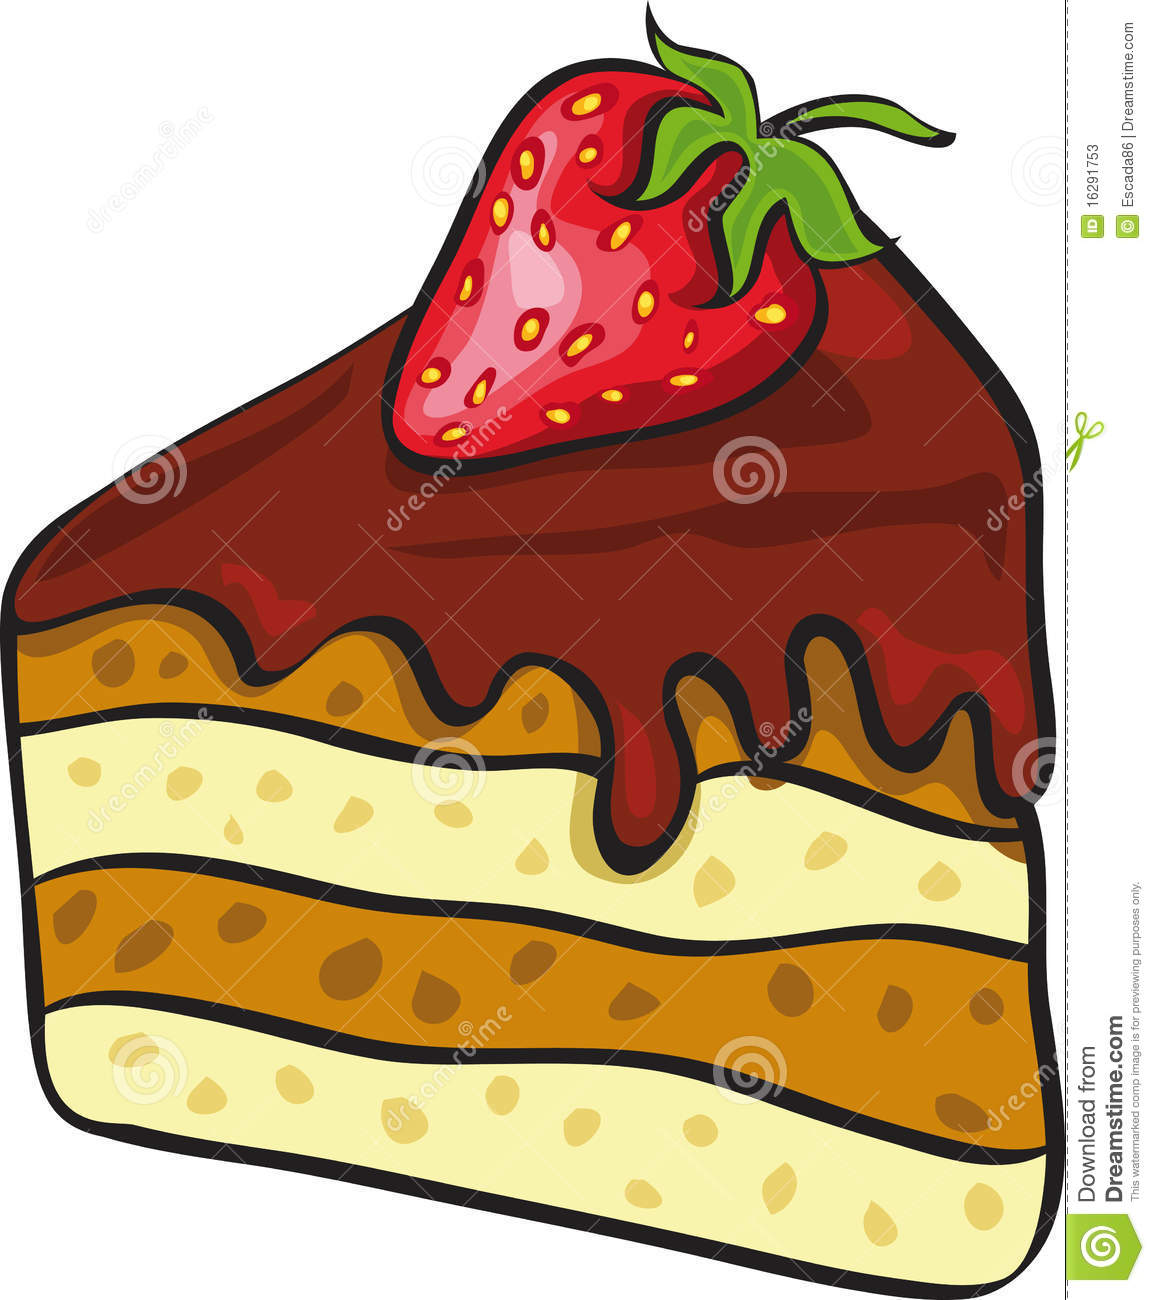 Cake clipart slice picture freeuse download Piece of chocolate cake clipart - ClipartFest picture freeuse download